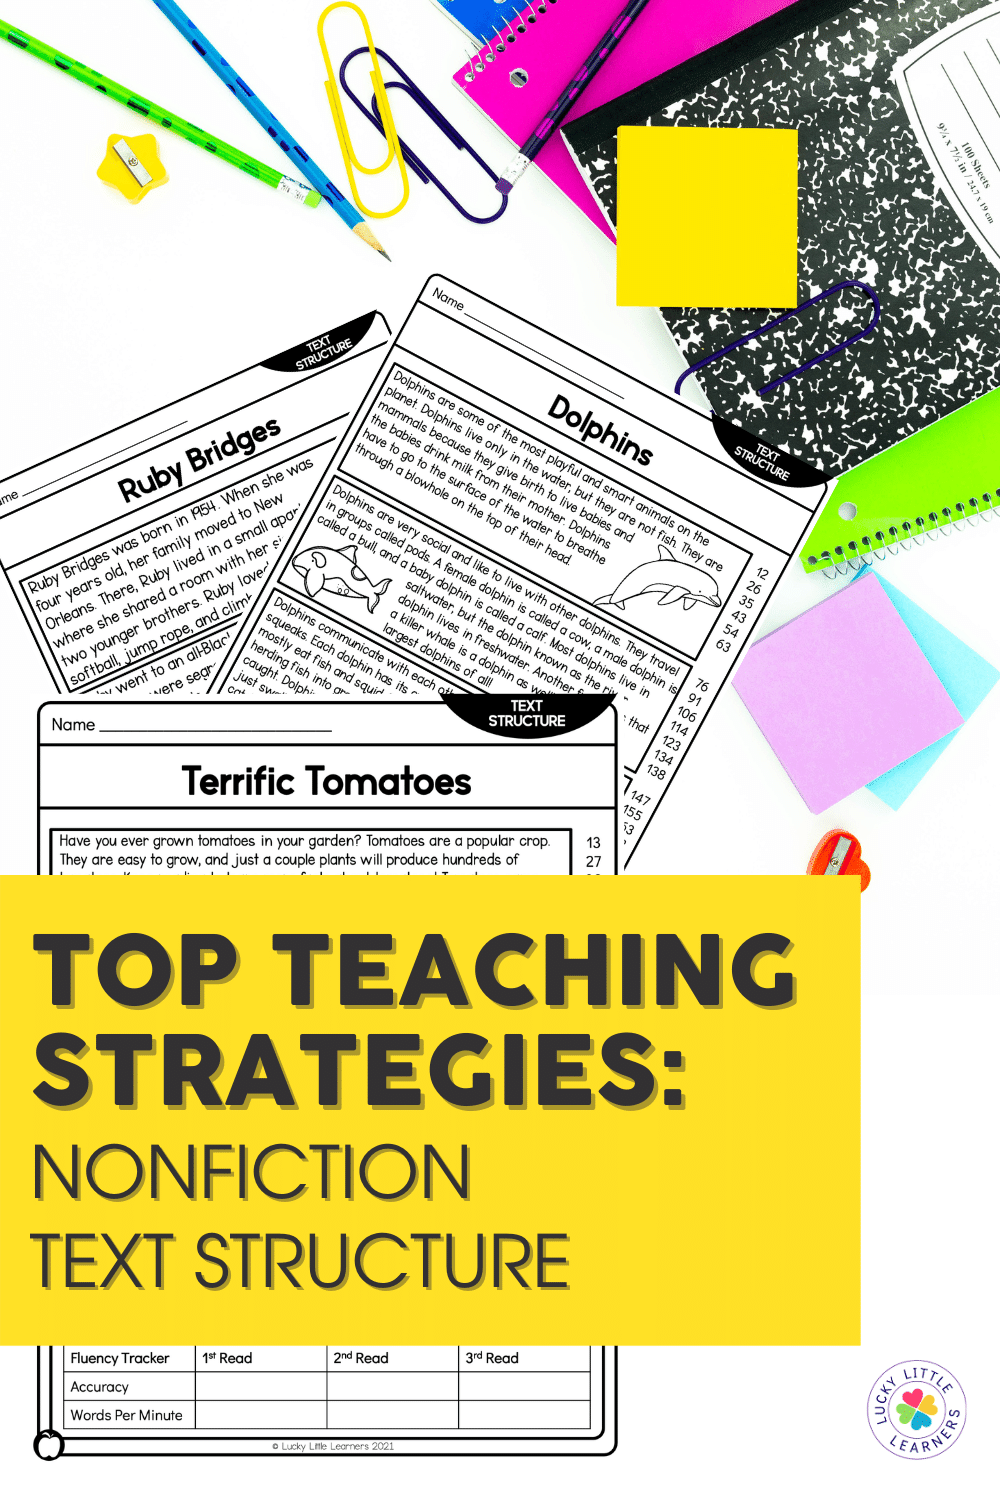 Teaching nonfiction text structure helps readers set a purpose for reading nonfiction as well as aids in their nonfiction comprehension and comfort. Also, by recognizing how their nonfiction text is organized, students can look for certain components to understand the text better.